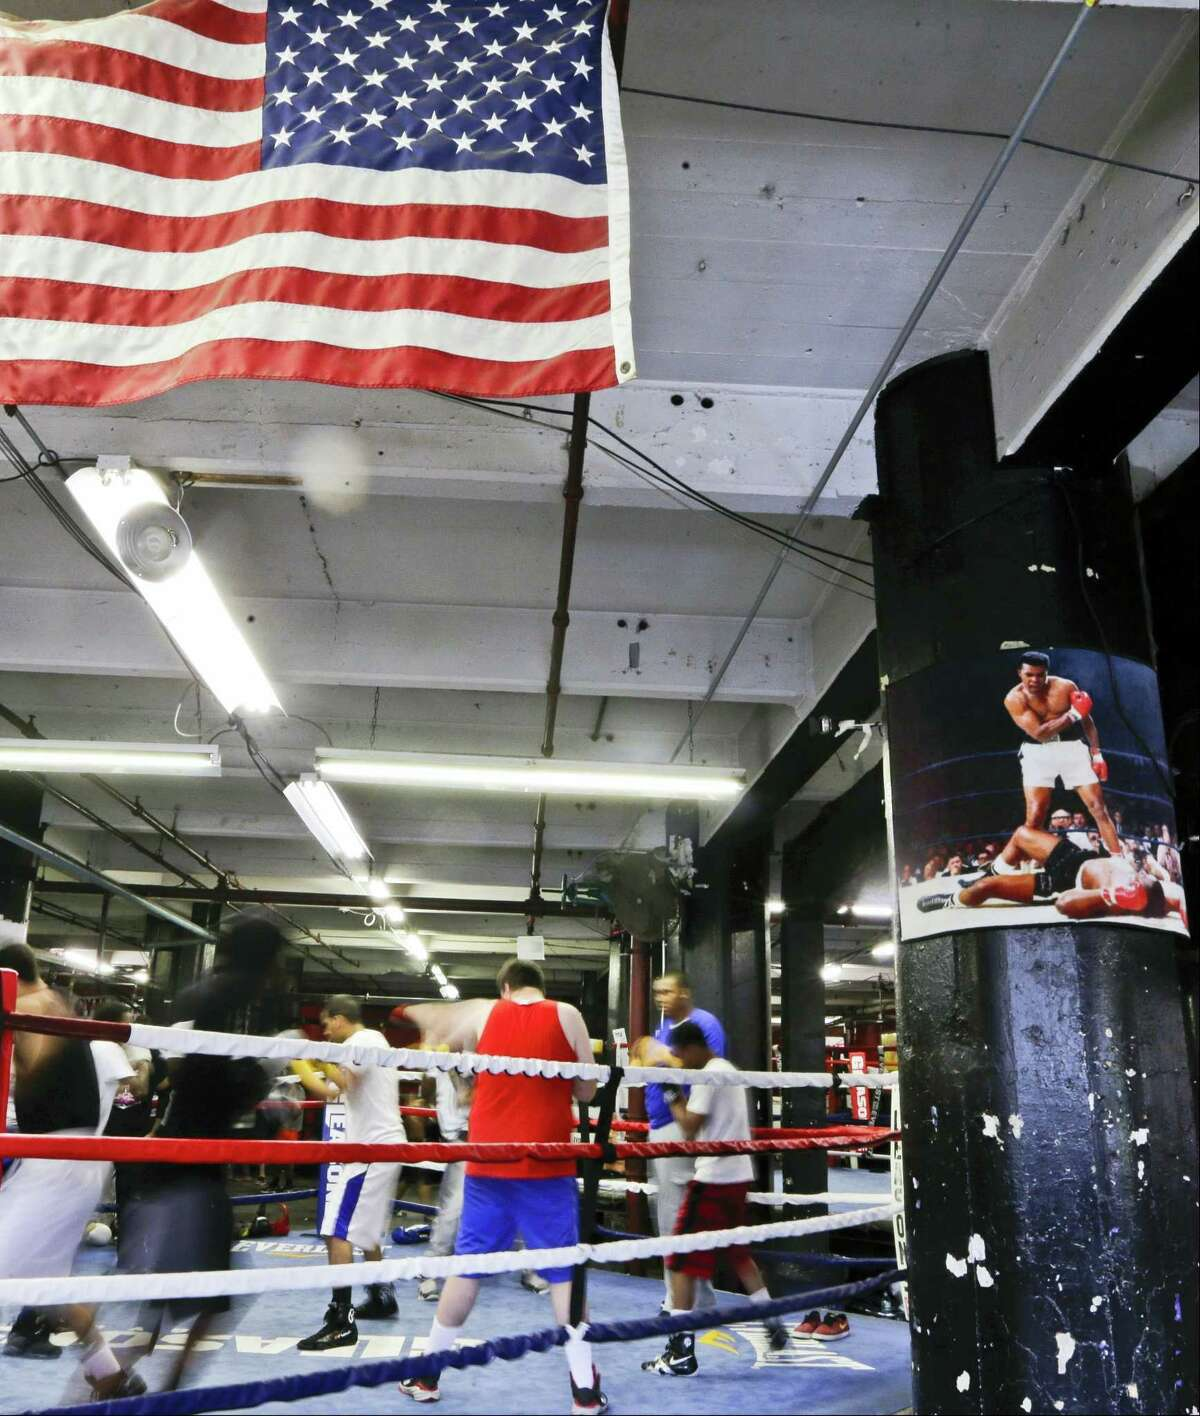 Students take a boxing class at Gleason's Gym next to a photo of Muhammad Ali standing over Sonny Liston Saturday, June 4, 2016, in New York. Ali died Friday at age 74. A memorial service is scheduled for 10 a.m. in Louisville, Kentucky, Ali's hometown. (AP Photo/Frank Franklin II)